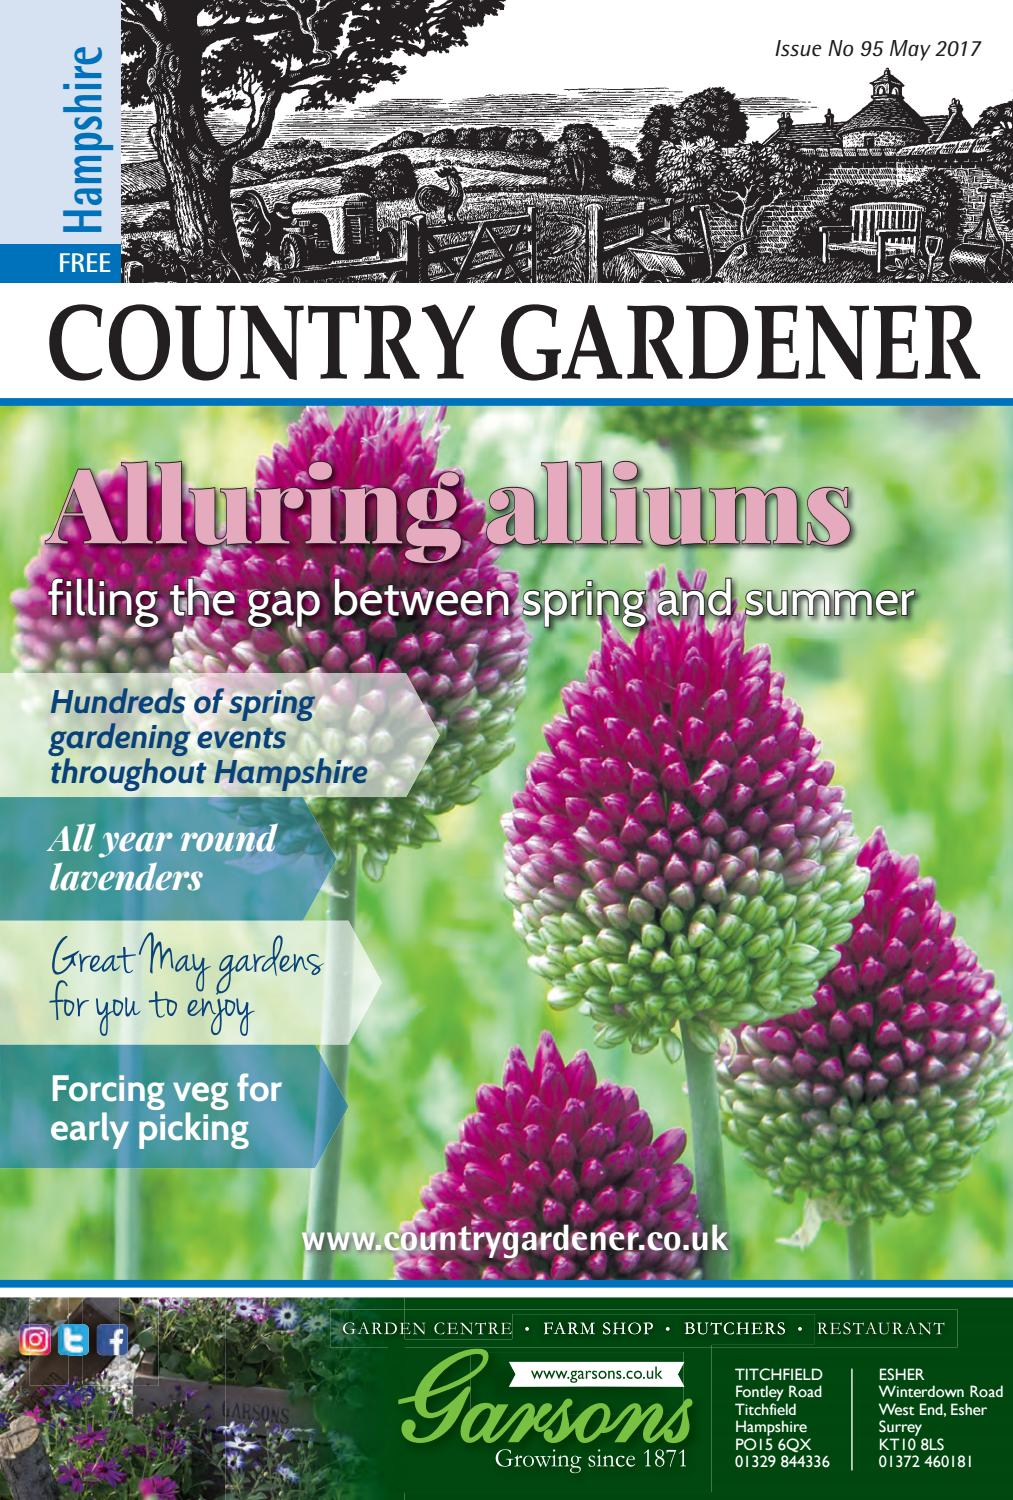 Mesmerizing Hampshire Country Gardener May  By Country Gardener  Issuu With Excellent Garden Soil Cheap Besides Garden Shading Furthermore Rodents In The Garden With Charming Franklins Gardens Northampton Also Sheikra Busch Gardens Tampa In Addition Spas Near Covent Garden And Expanding Garden Hose As Well As Mac Garden State Plaza Additionally Covent Garden Chinese Restaurants From Issuucom With   Excellent Hampshire Country Gardener May  By Country Gardener  Issuu With Charming Garden Soil Cheap Besides Garden Shading Furthermore Rodents In The Garden And Mesmerizing Franklins Gardens Northampton Also Sheikra Busch Gardens Tampa In Addition Spas Near Covent Garden From Issuucom